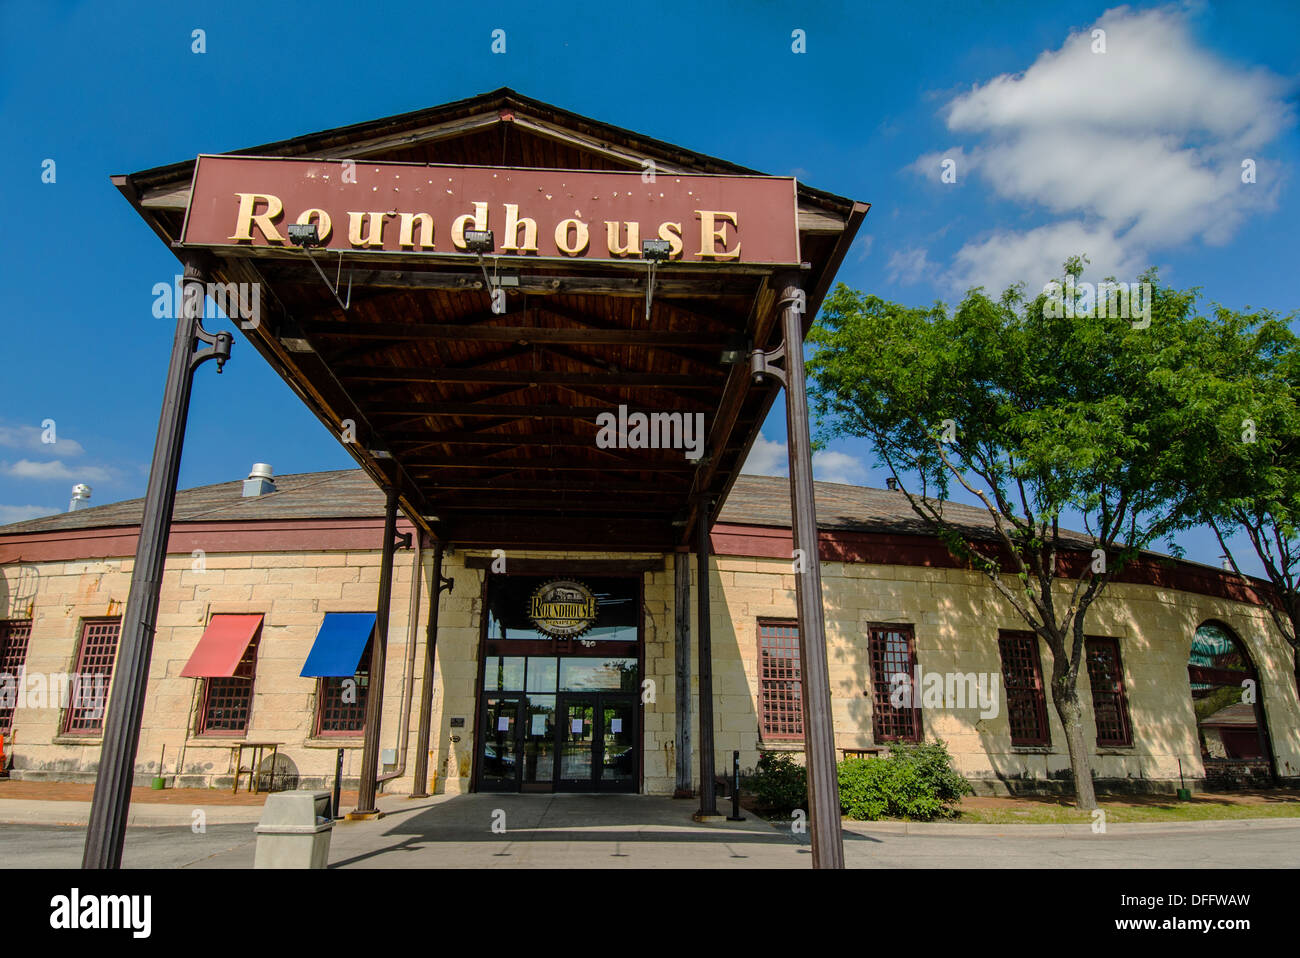 Two Brothers Roundhouse restaurant in Aurora, Illinois, a town along the Lincoln Highway - Stock Image